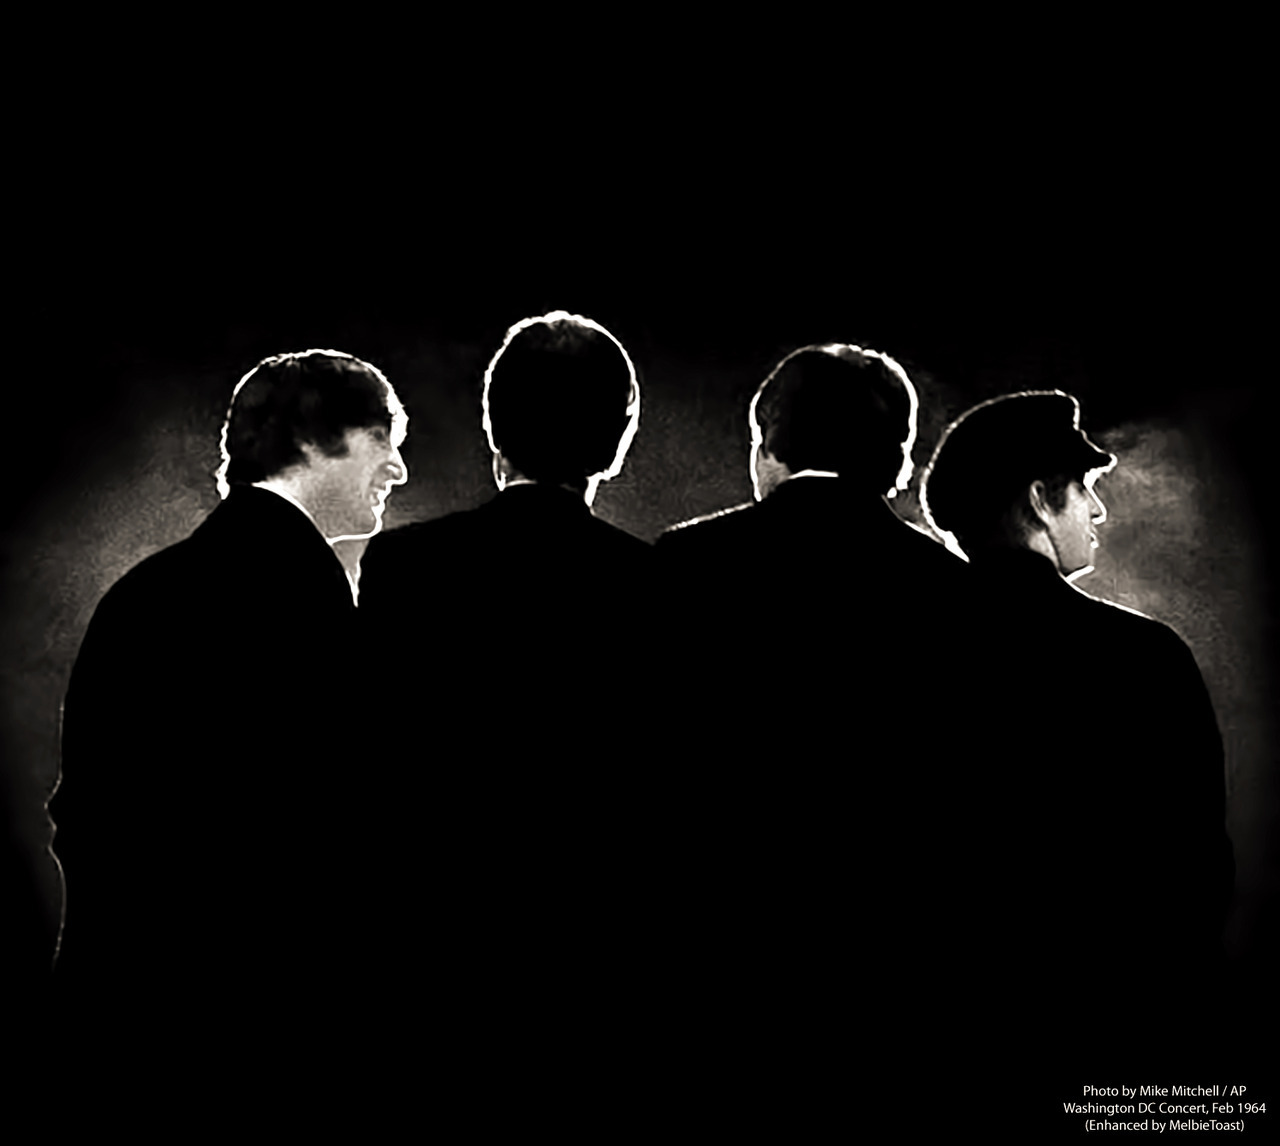 The FAB FOUR, at their first concert in the United States, at the Washington D.C. Coliseum in February 1964. Original photo by Mike Mitchell / AP, one of a collection of Beatles photos that sold at auction for $362,000 in July 2011.  A silhouette of the Fab Four captures the Beatles - Read more: http://www.dailymail.co.uk/news/article-2220889/Incredible-black-white-pictures-adoring-Beatles-fans-gig-America.html#ixzz29xsA6D00